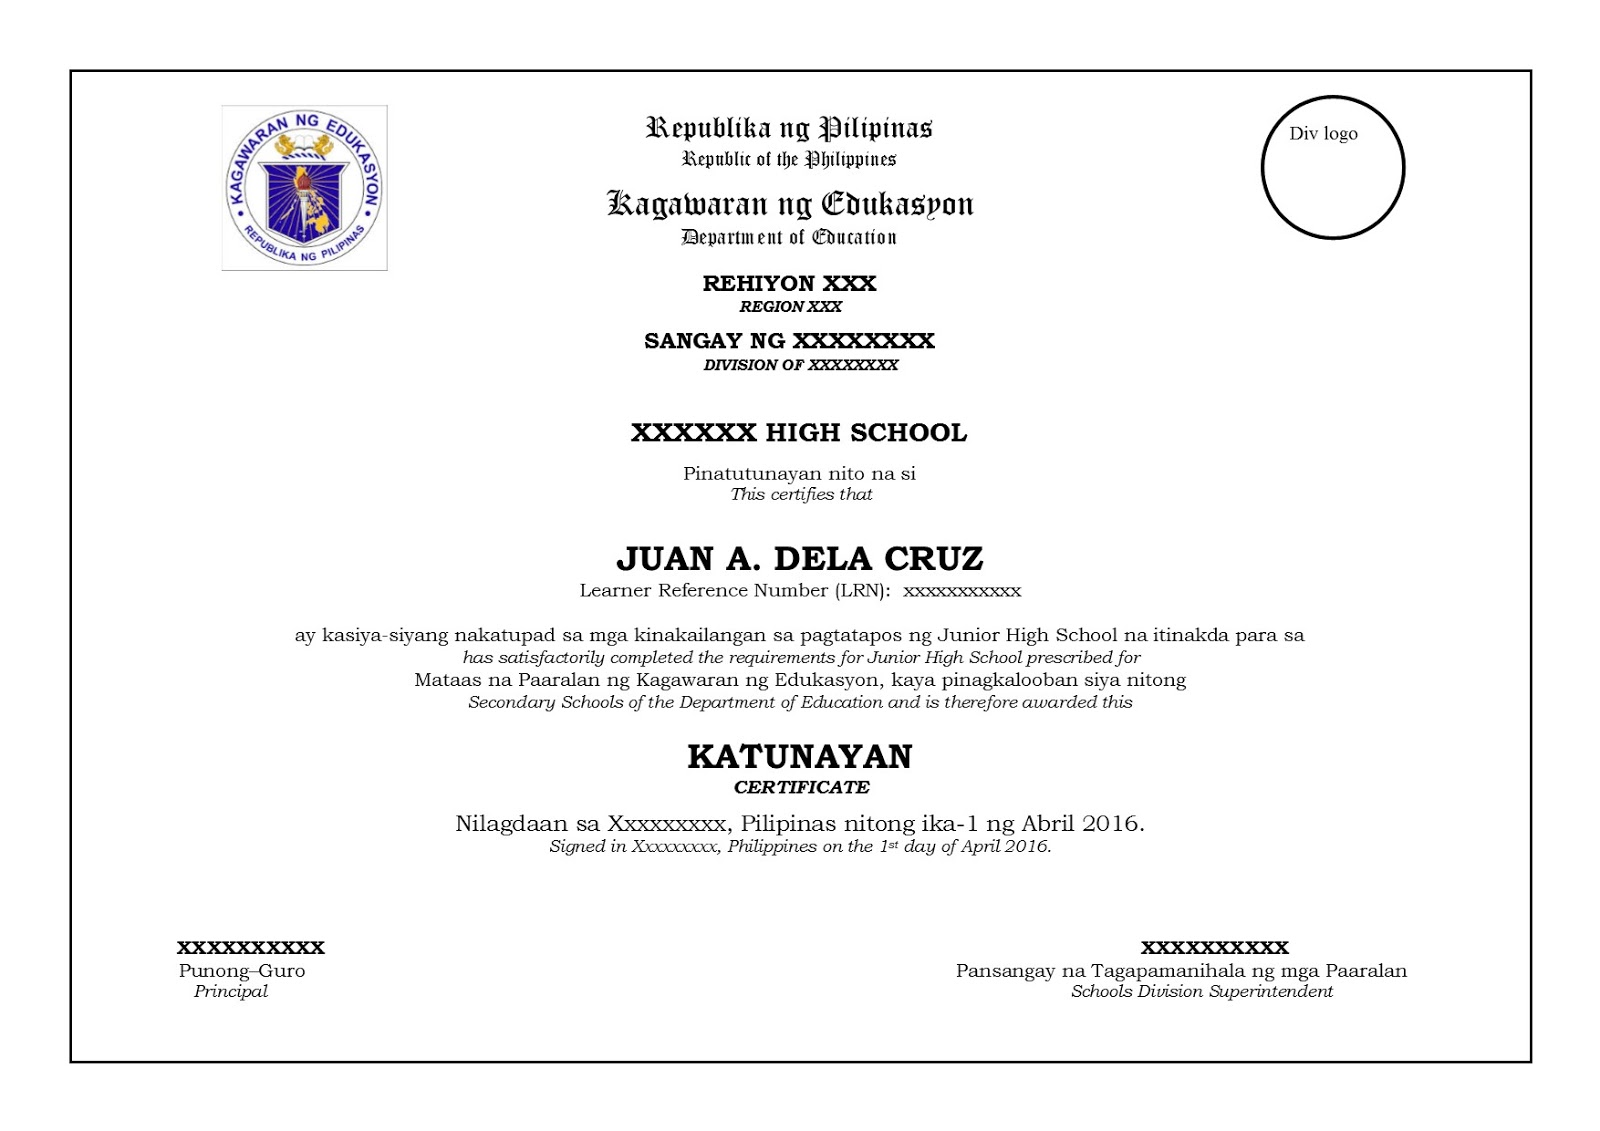 Final and official sample template for grade 6 and grade 10 final and official sample template for grade 6 and grade 10 certificate from deped central office yelopaper Images